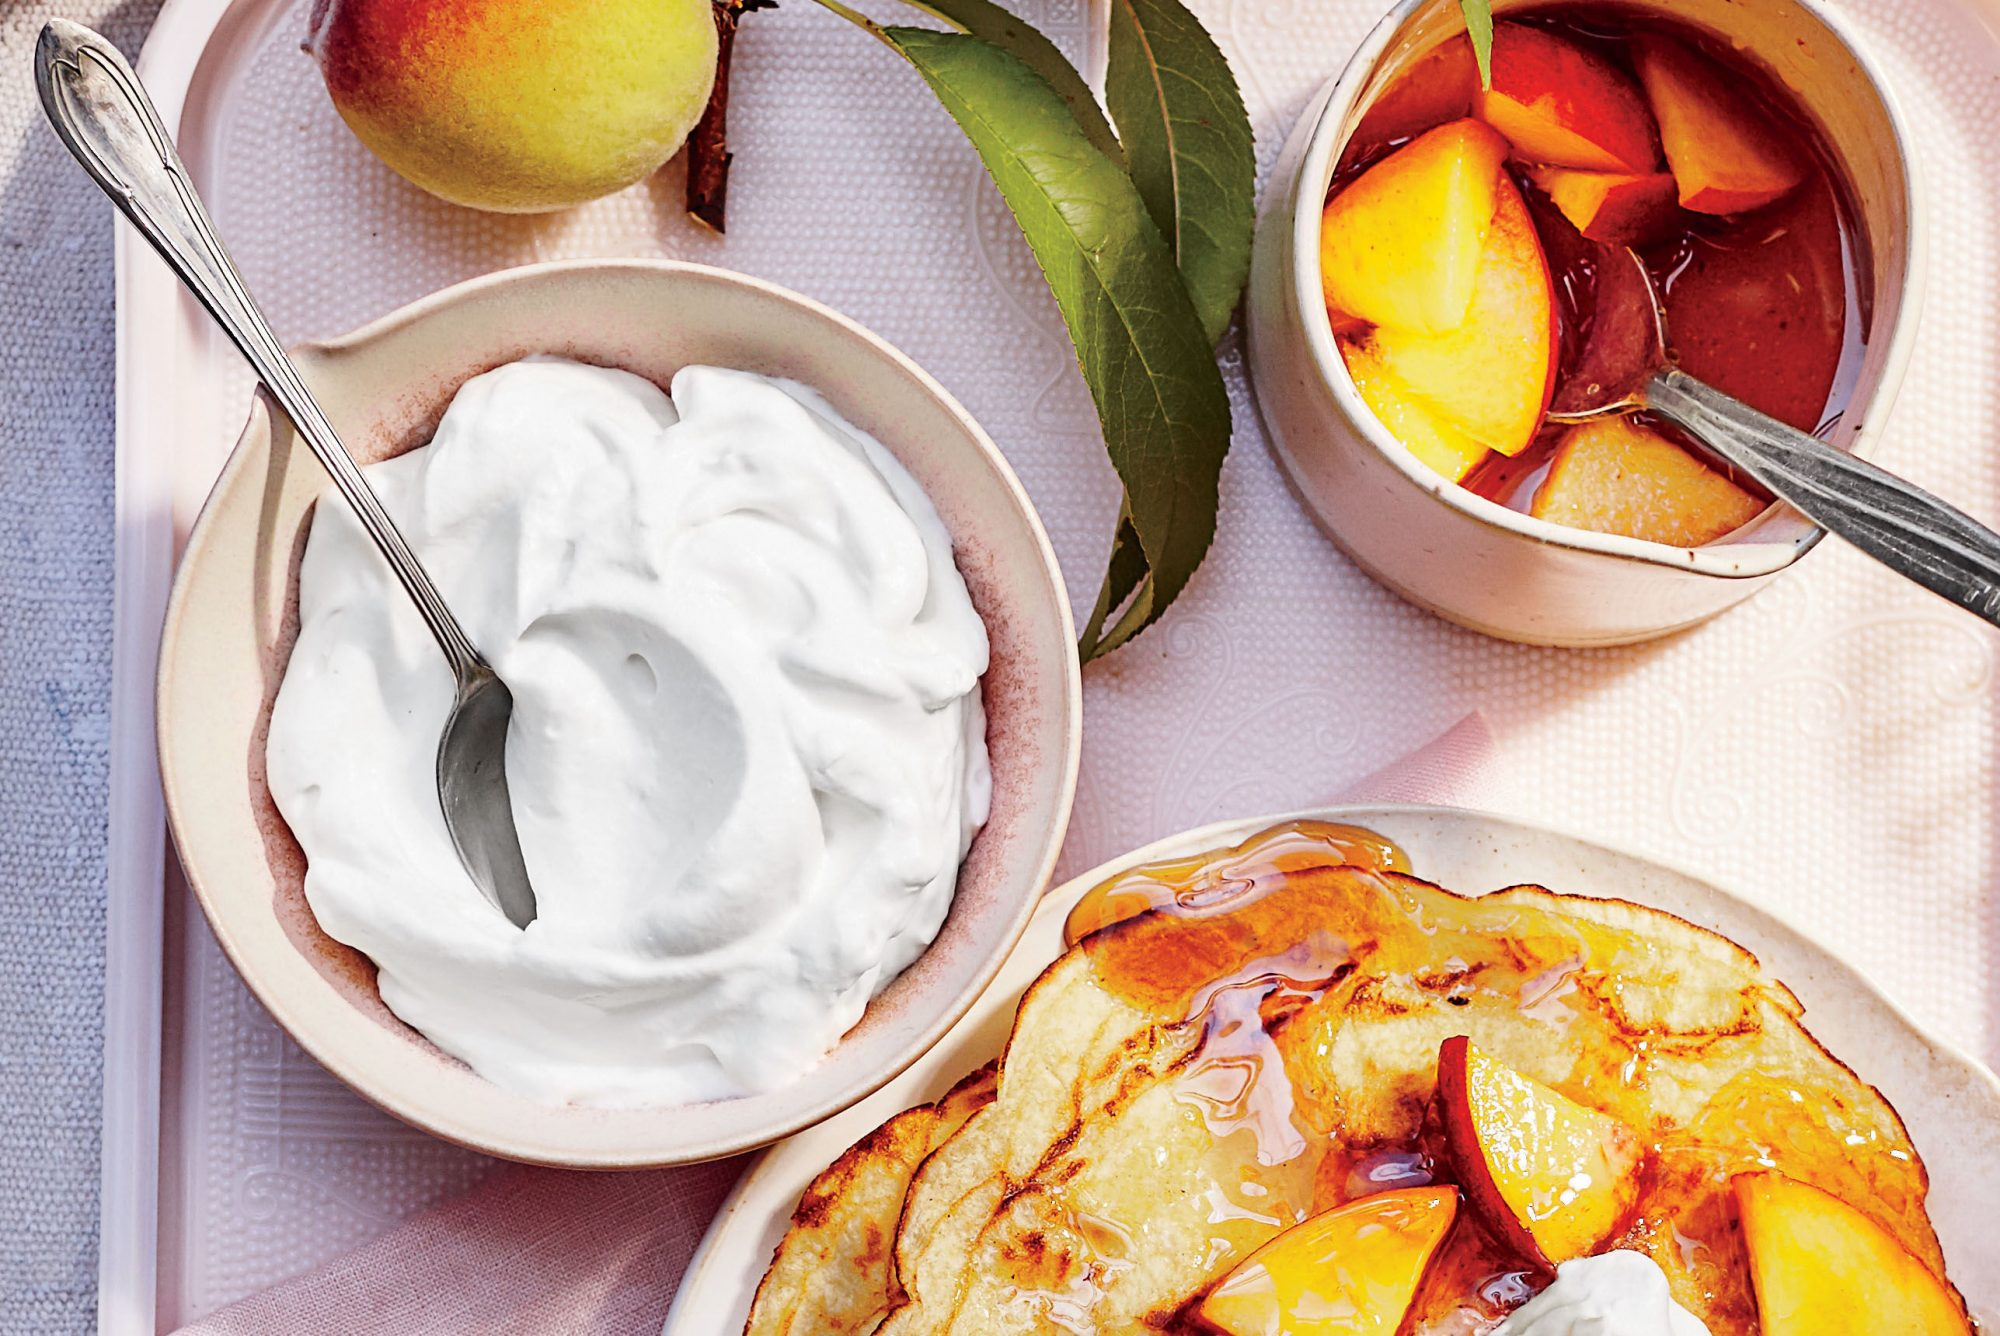 You Should Add Greek Yogurt to Your Whipped Cream—Here's Why